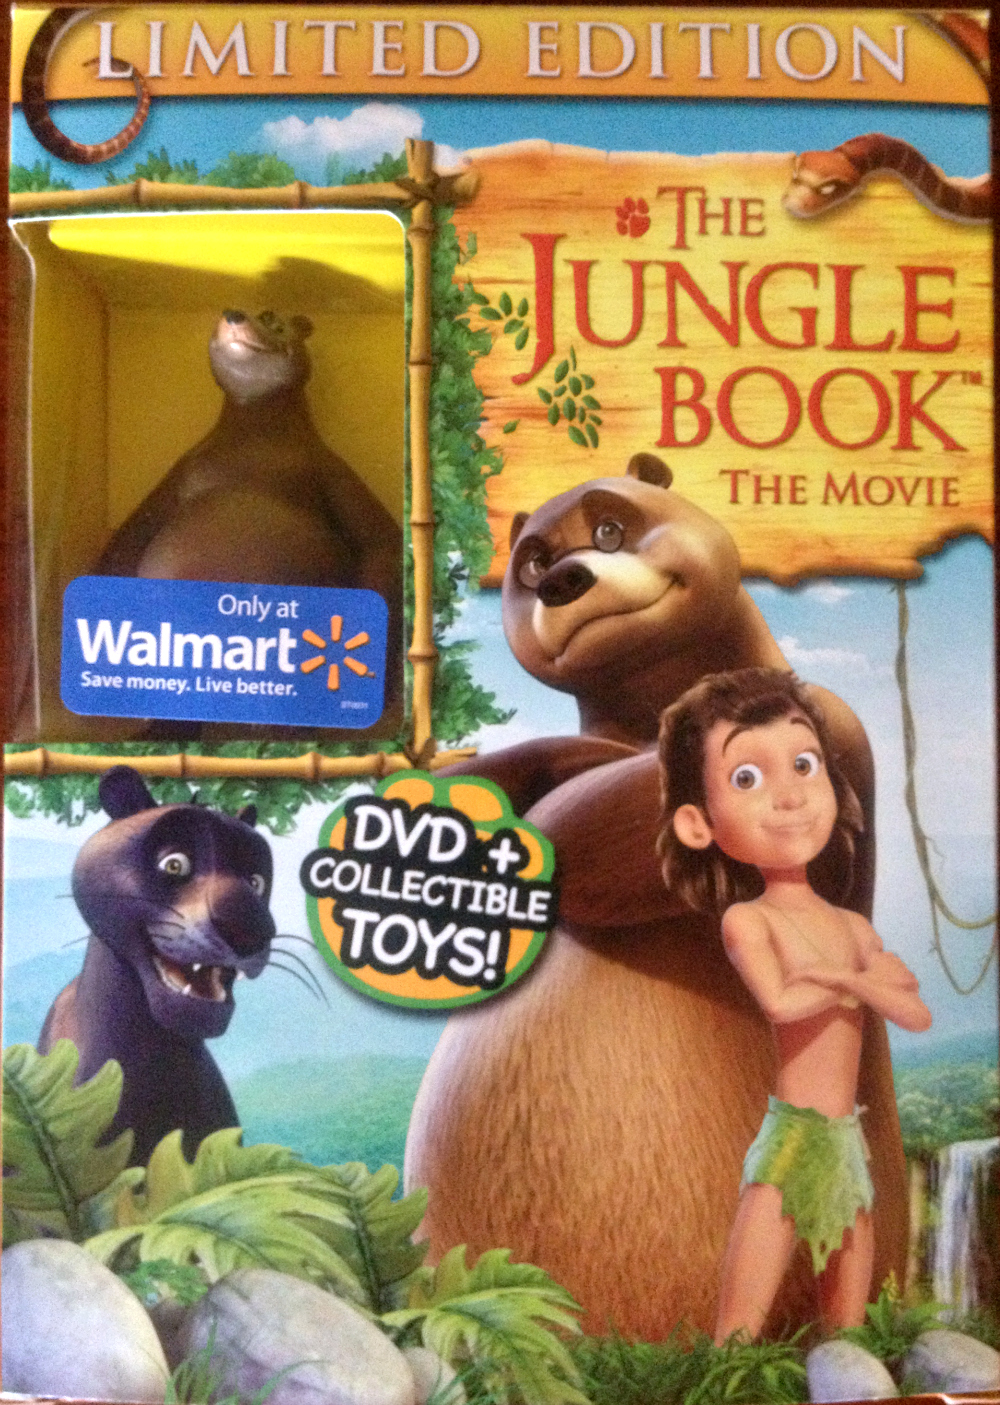 The Jungle Book The Movie DVD Review